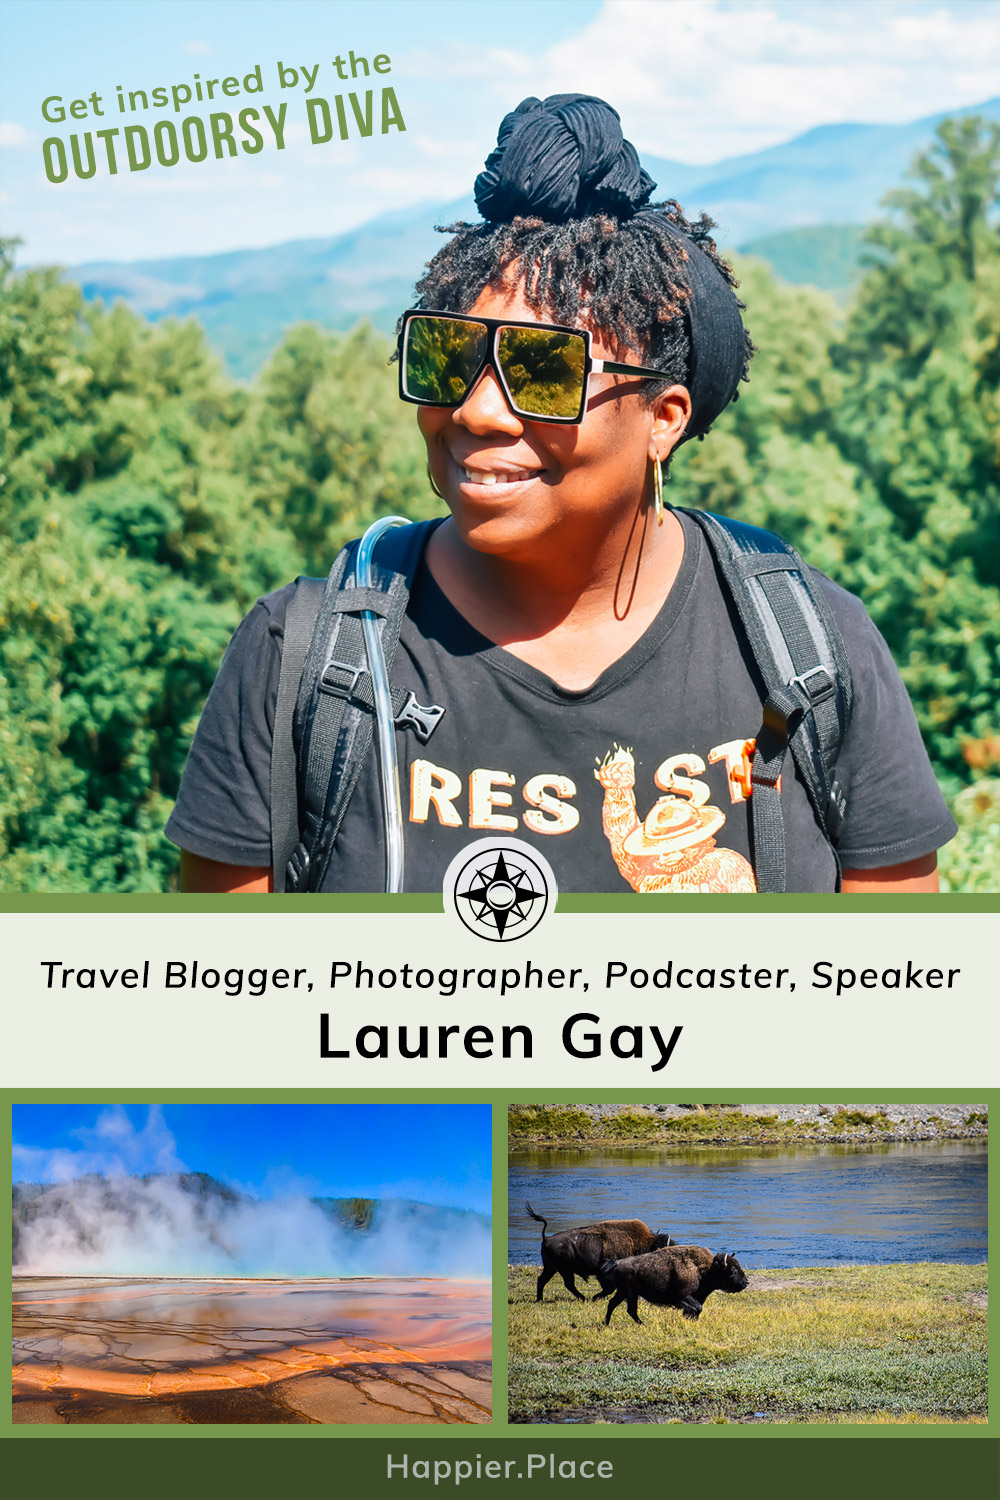 Lauren Gay, Outdoorsy Diva, Travel Blogger, Photographer, Podcaster, Speaker